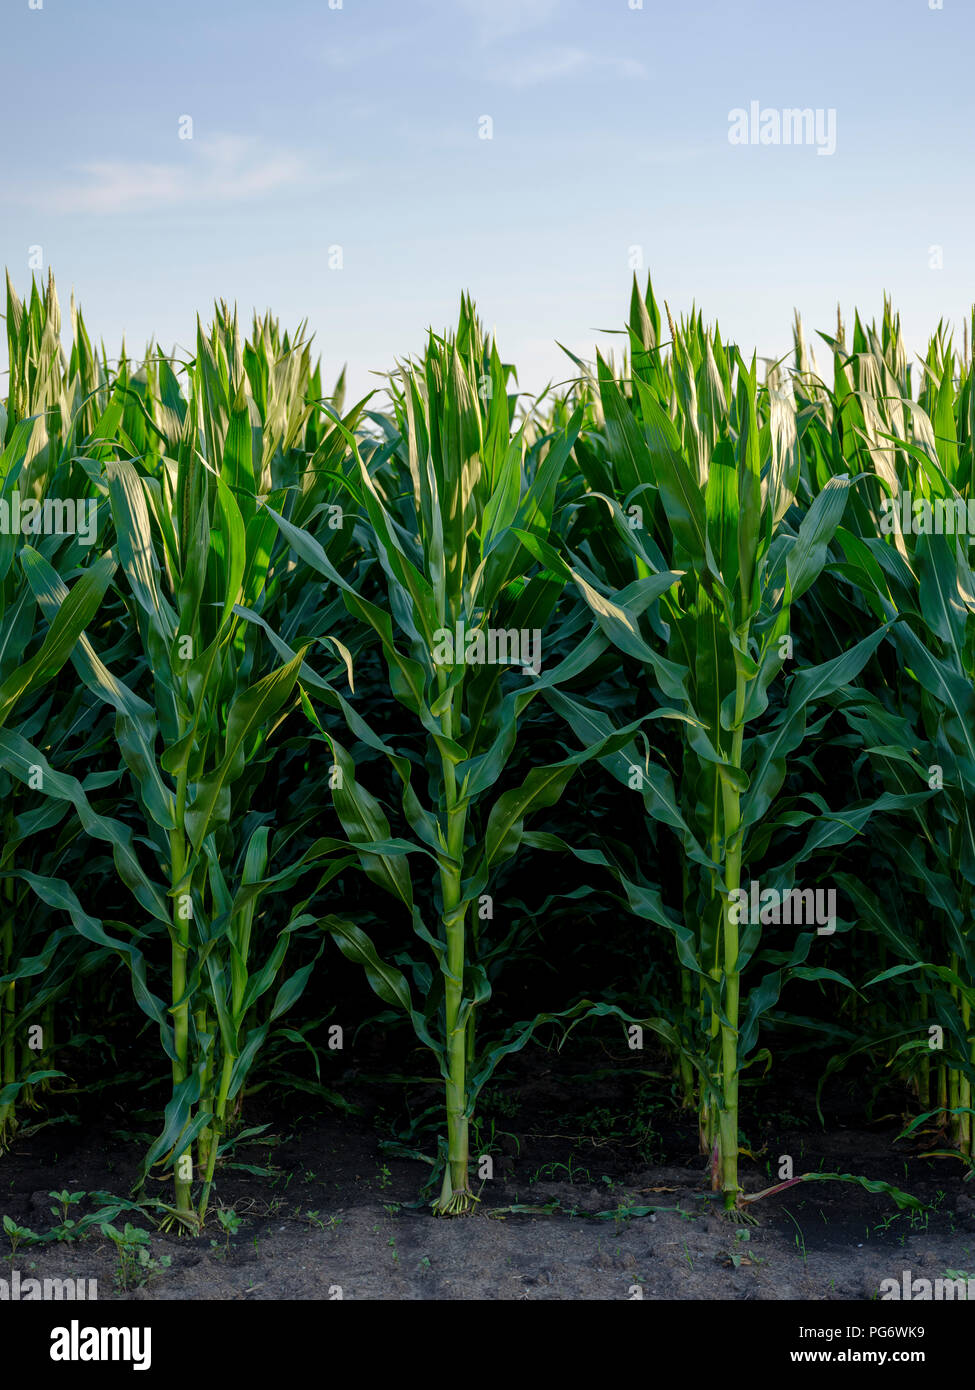 Serbia, Vojvodina. Green corn stems in a row, Zea mays - Stock Image